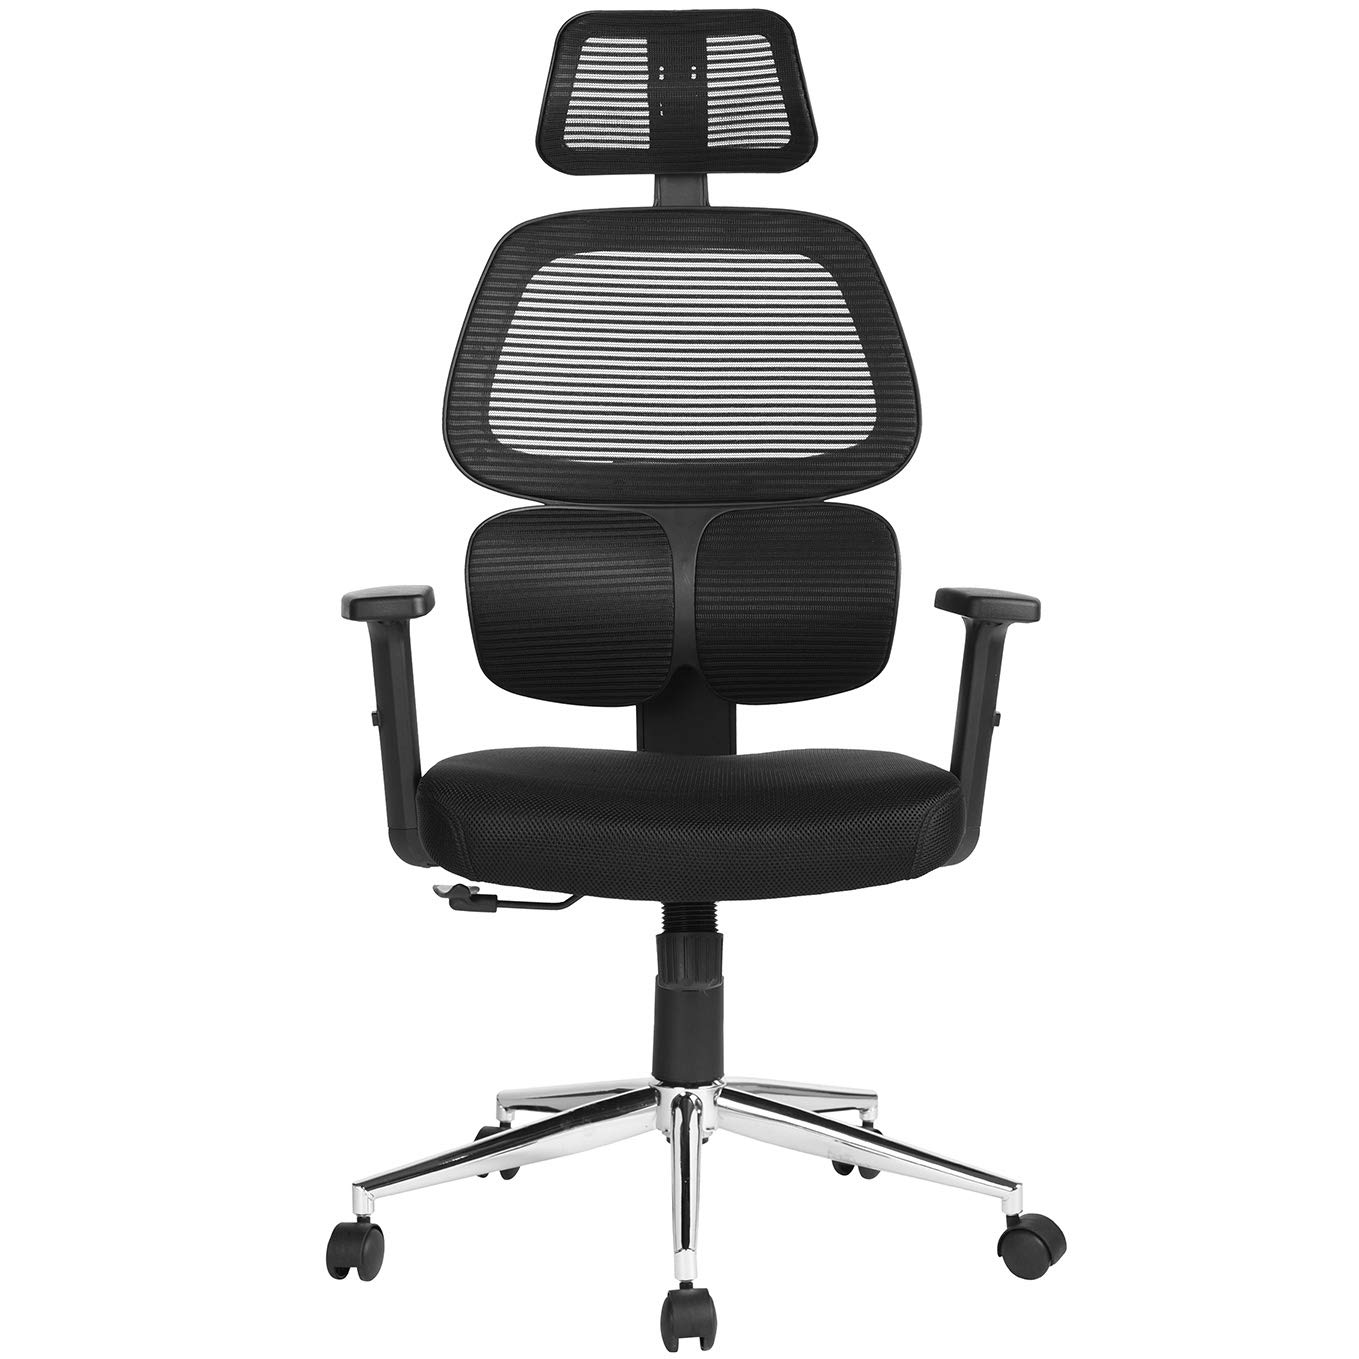 Update Ergonomic Office Chair Mesh Computer Desk Chair with Lumbar Support Adjustable Backrest Headrest Armrest High Back Swivel Task Executive Chairs for Home Office Conference, Black ...